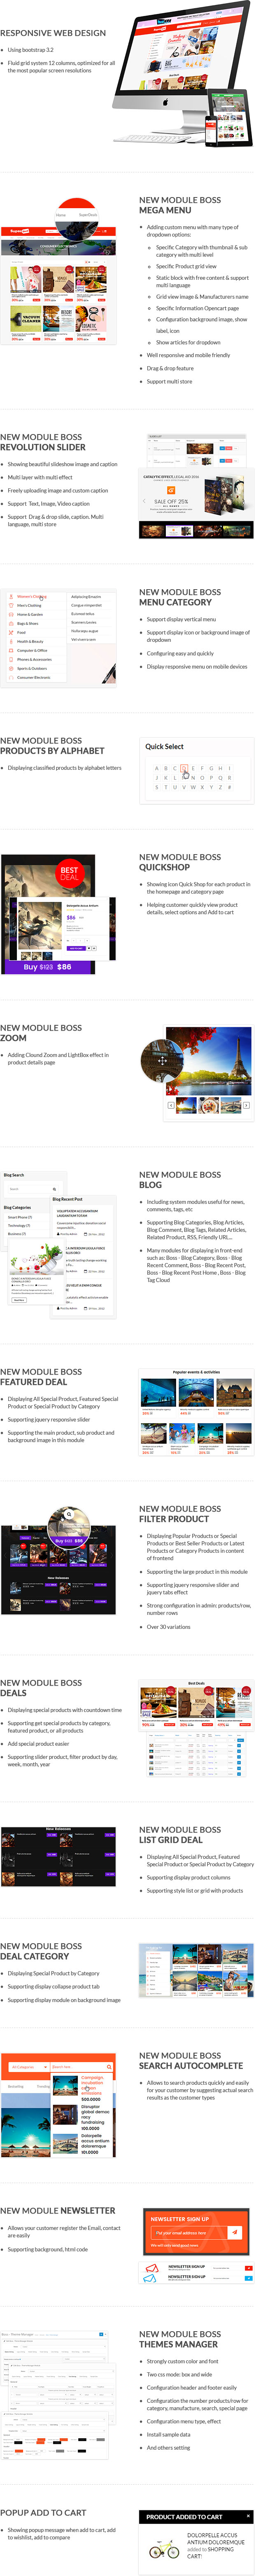 Super Deal - Premium Responsive Opencart Theme - Daily Deals, Best Deals Module + Blog